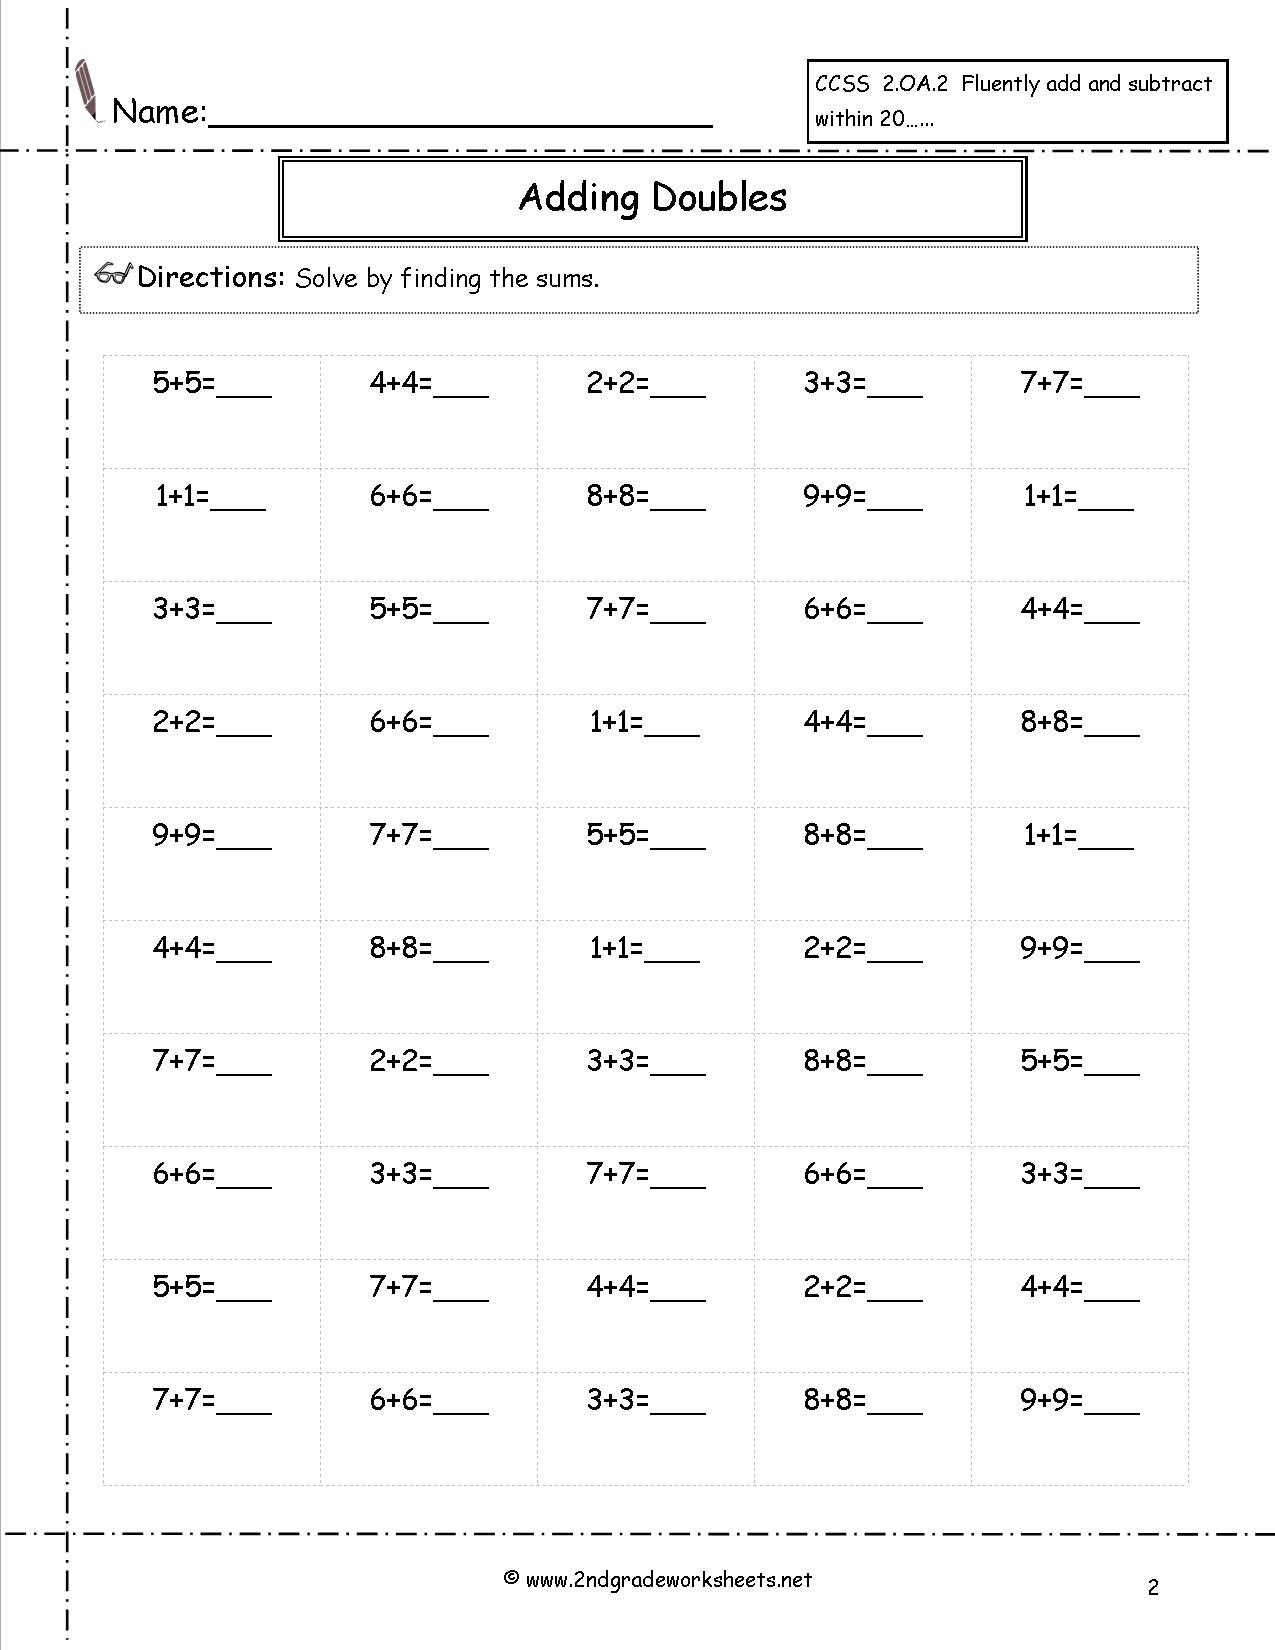 18 Best Images Of Doubles Minus 1 Worksheet